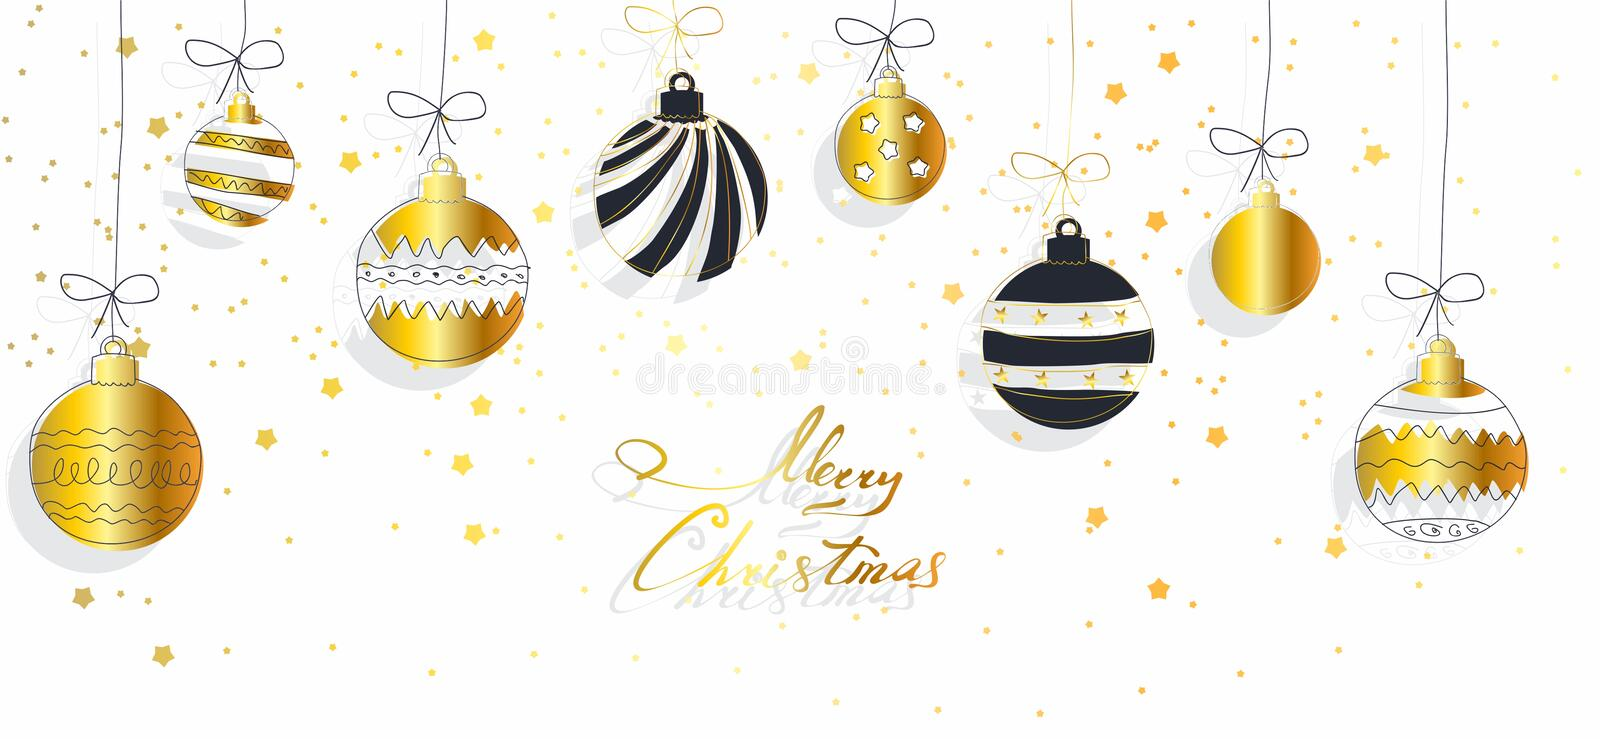 Christmas background with balls and strars royalty free stock photography